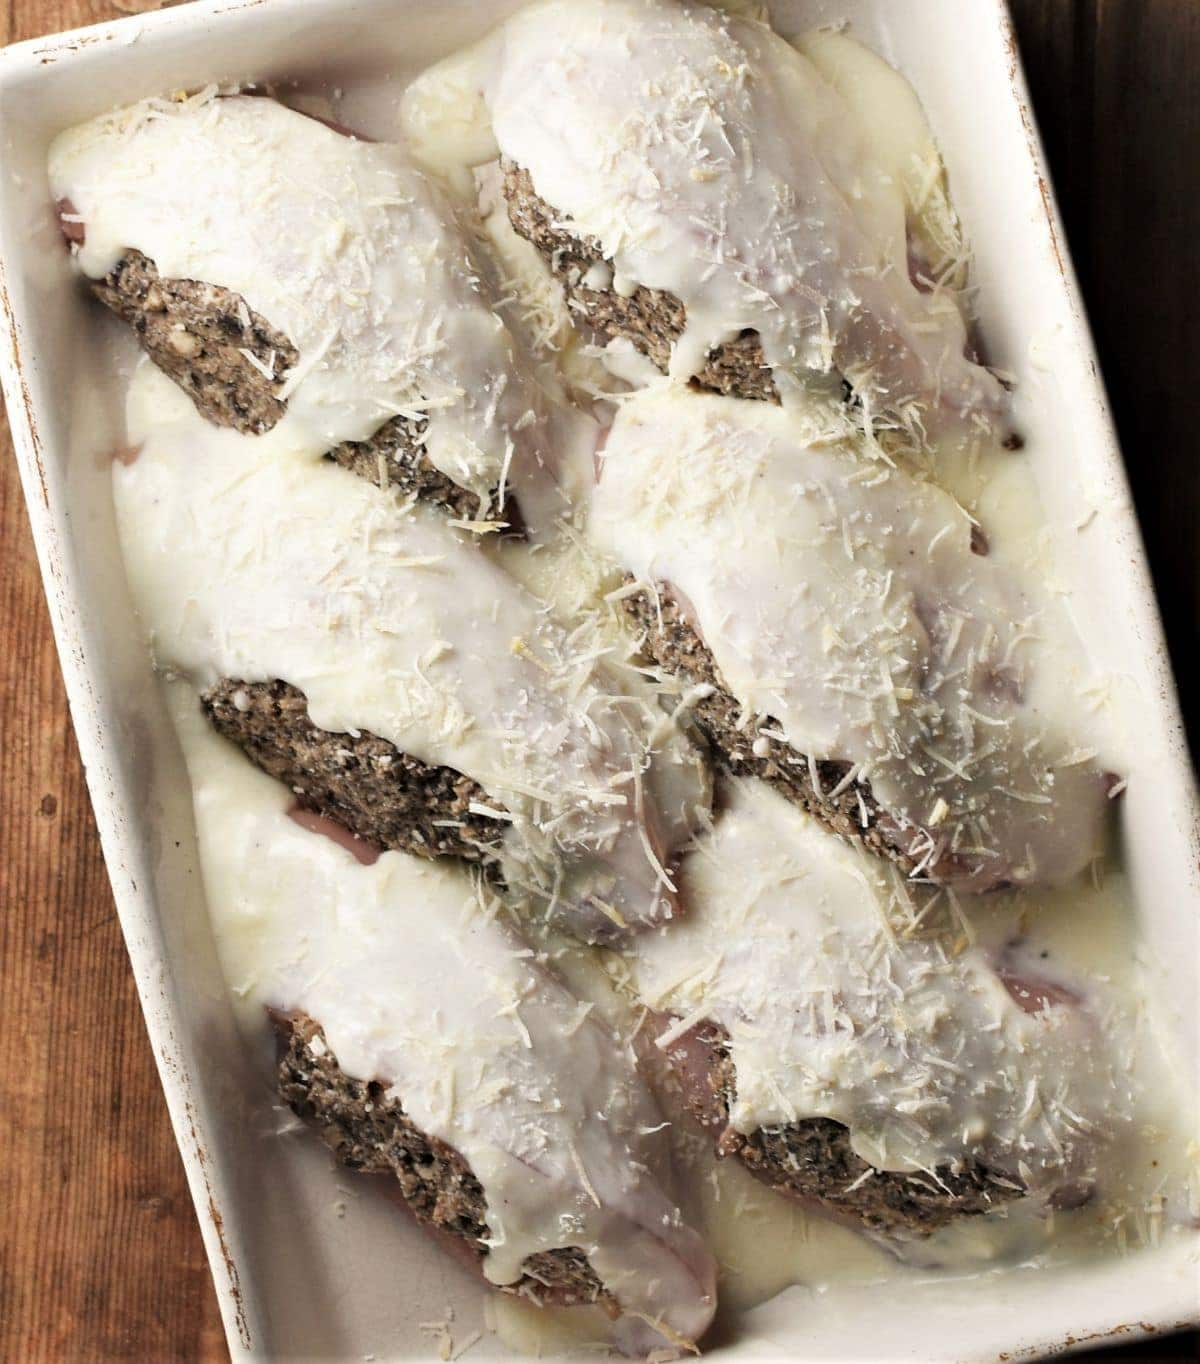 6 chicken breasts in creamy sauce in rectangular dish.